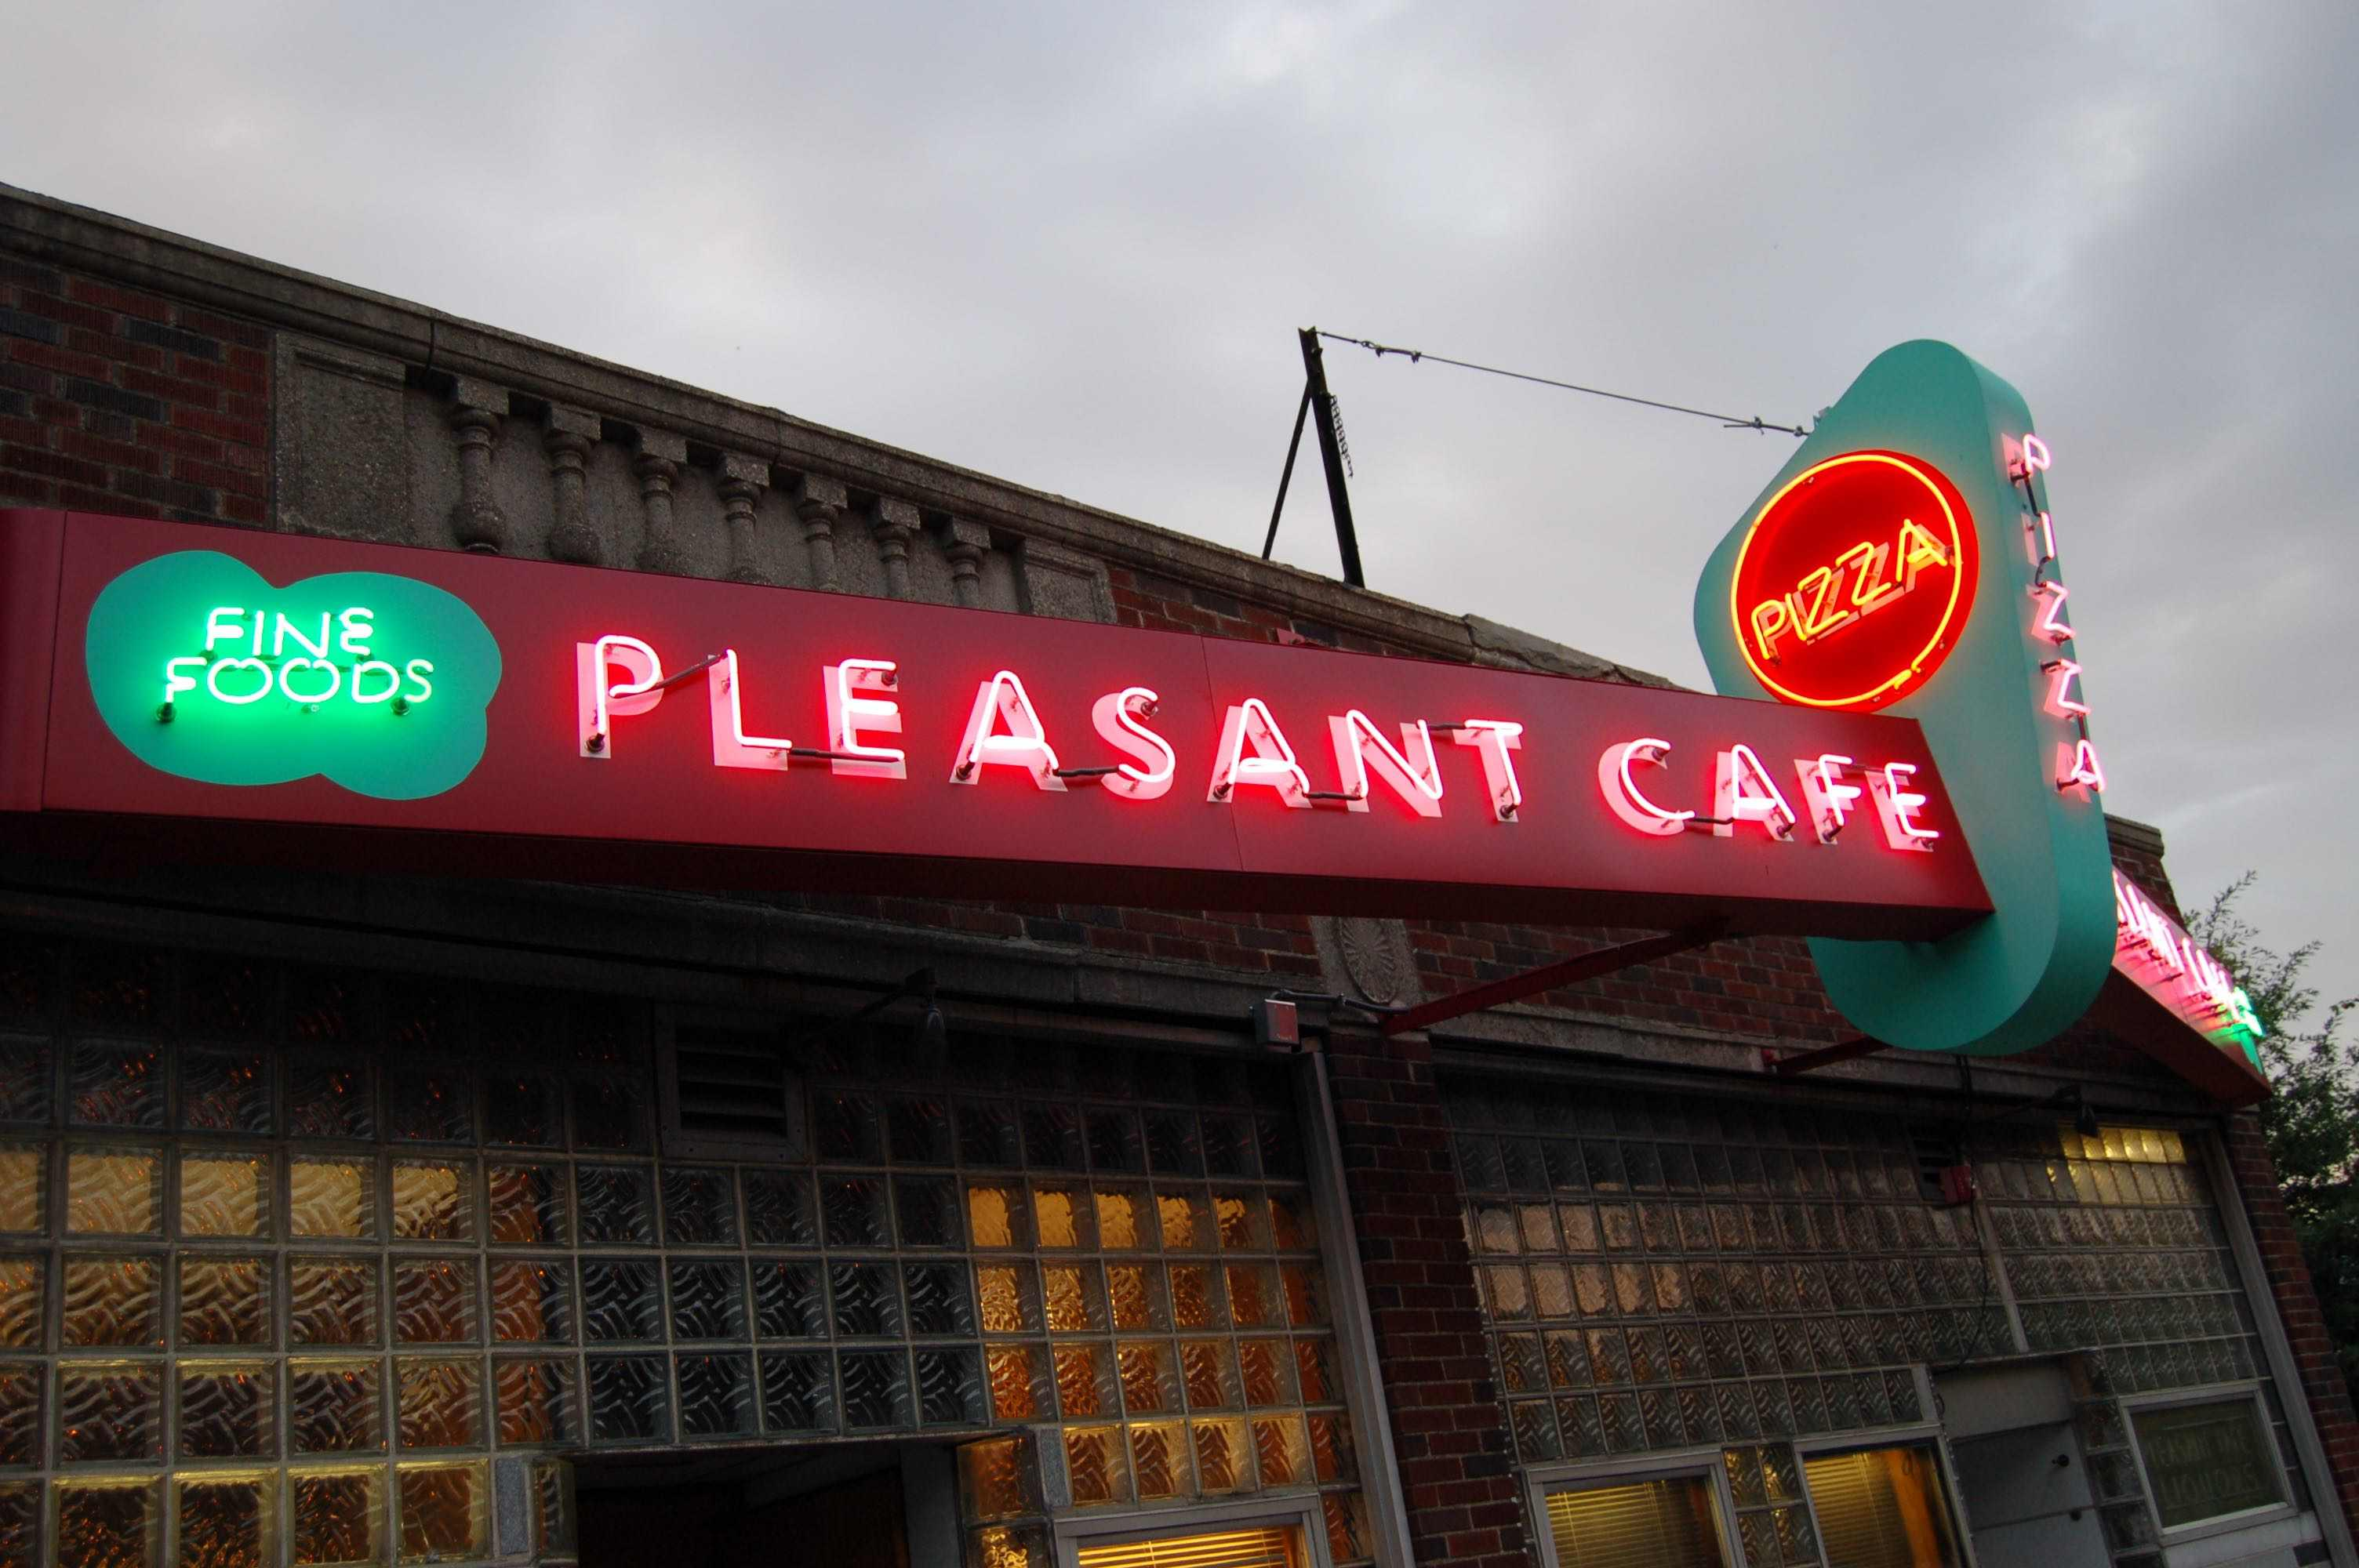 Pleasant Cafe, Roslindale, Mass. (Boston neighborhood)